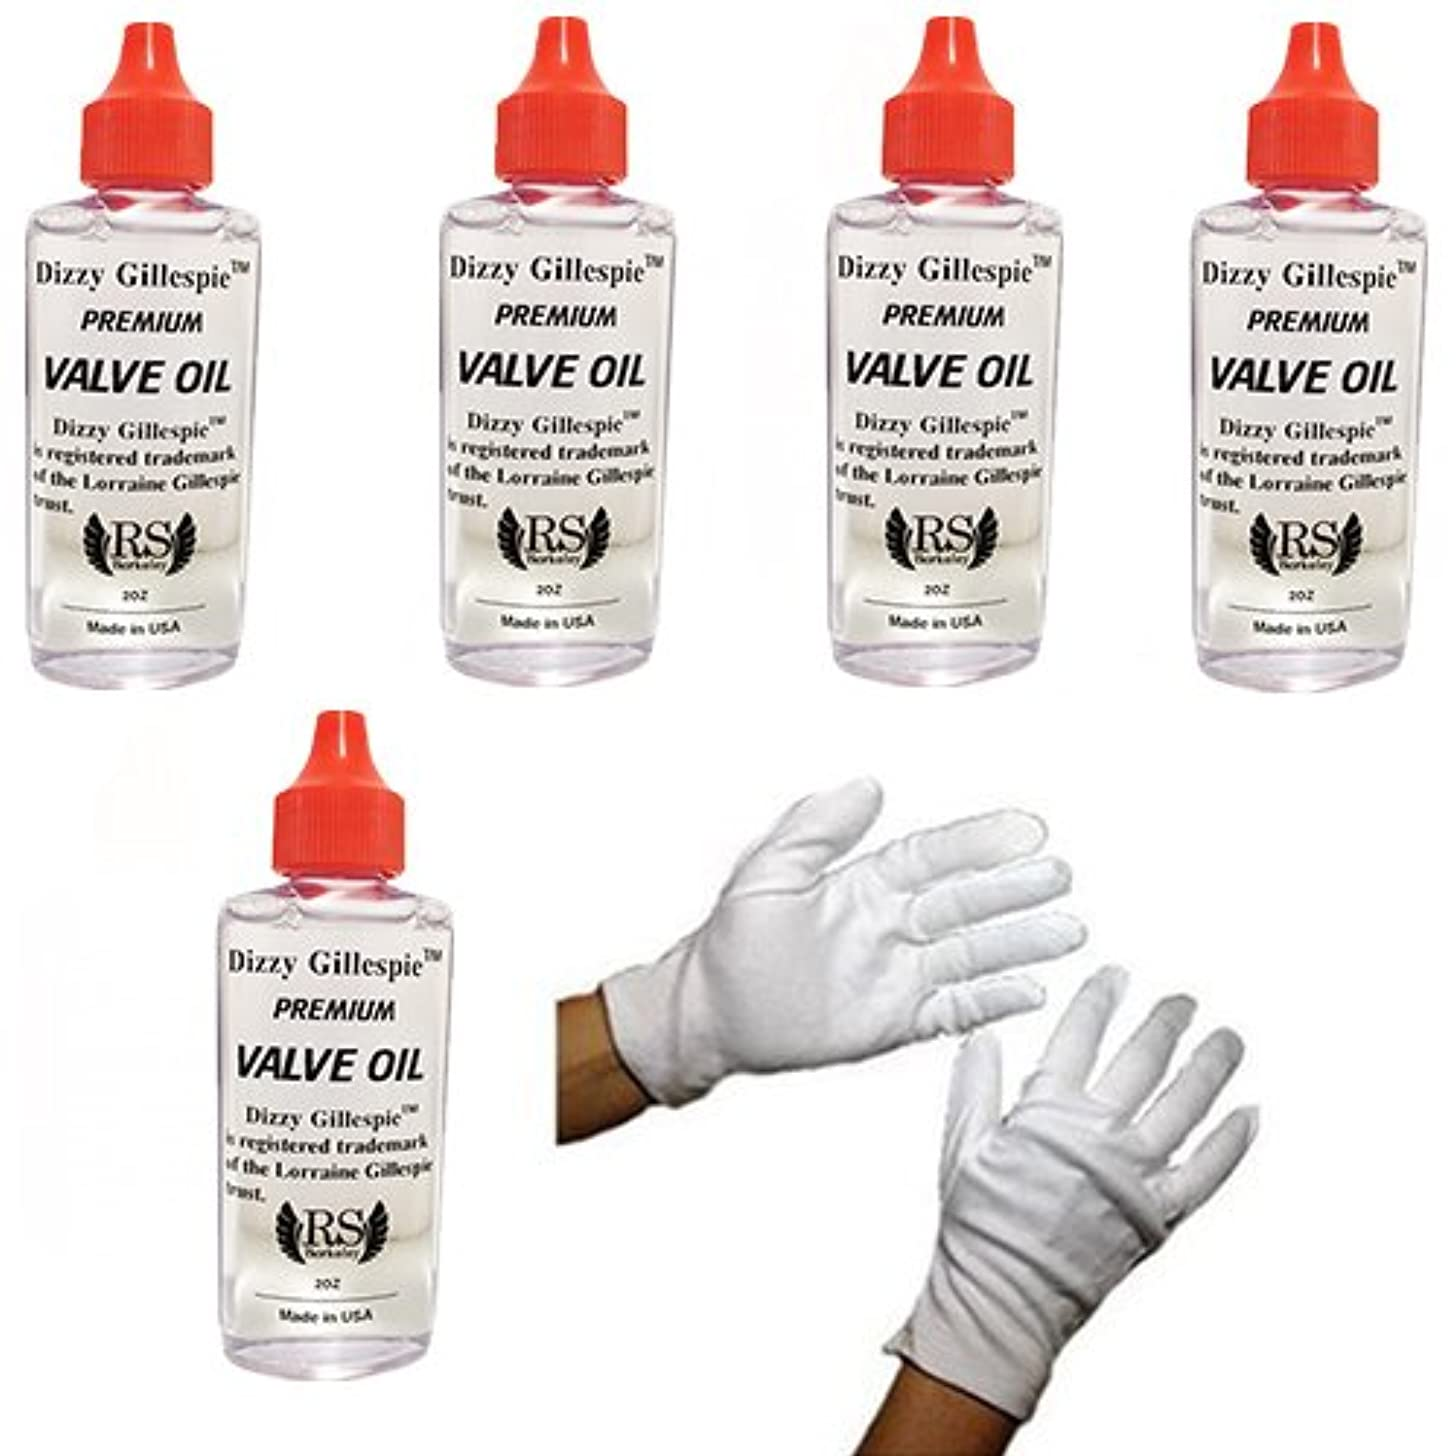 RS Berkeley Euphonium Dizzy Gillespie Valve Oil 5 Pack w/Marching Gloves